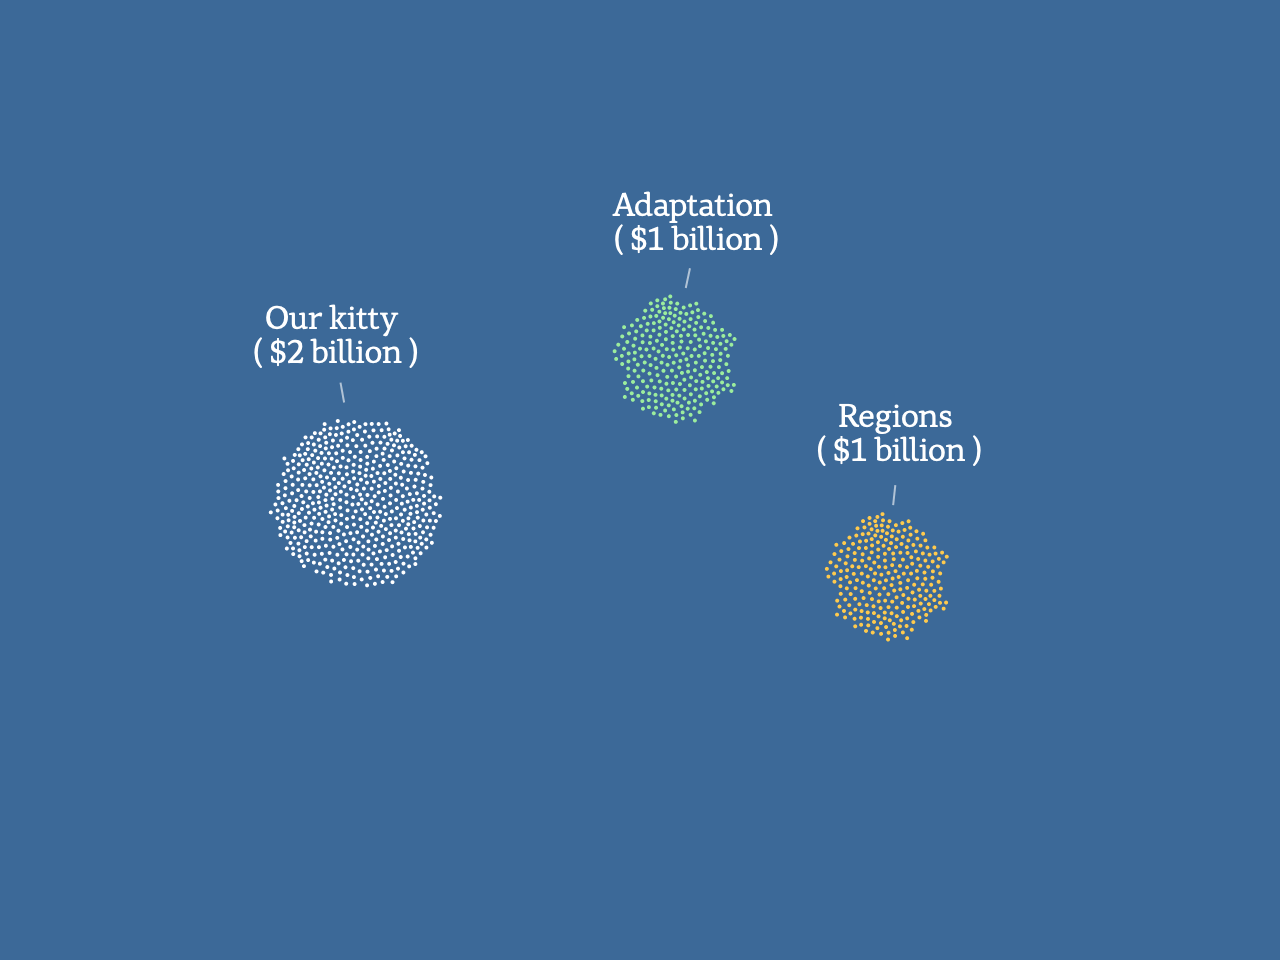 A graphic showing $1 billion spent on helping regions, another $1 billion for vulnerable communities and a $2 billion kitty.